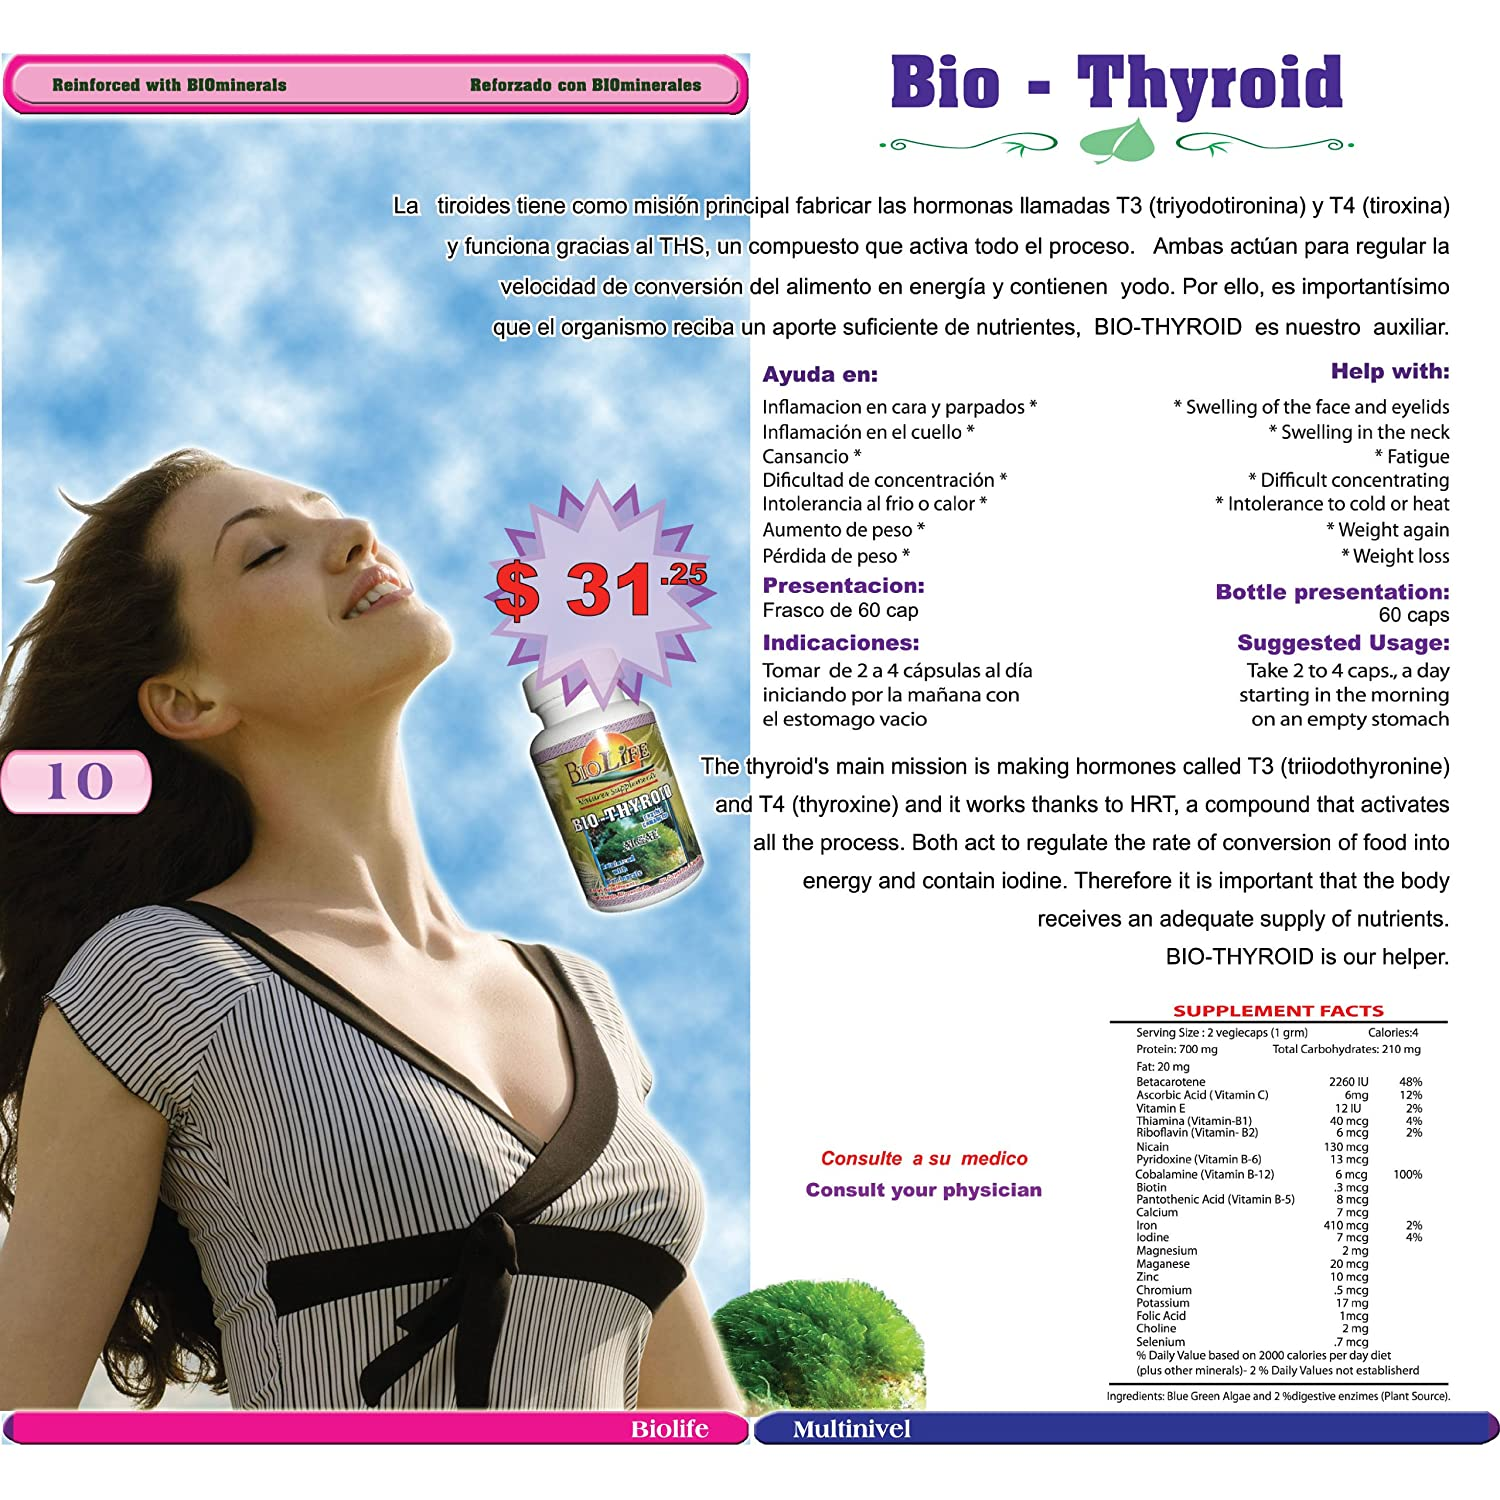 Amazon.com: Bio Thyroid By Biolife, 60 Caps Blue Green Algeae and Biominerals 500mg: Health & Personal Care